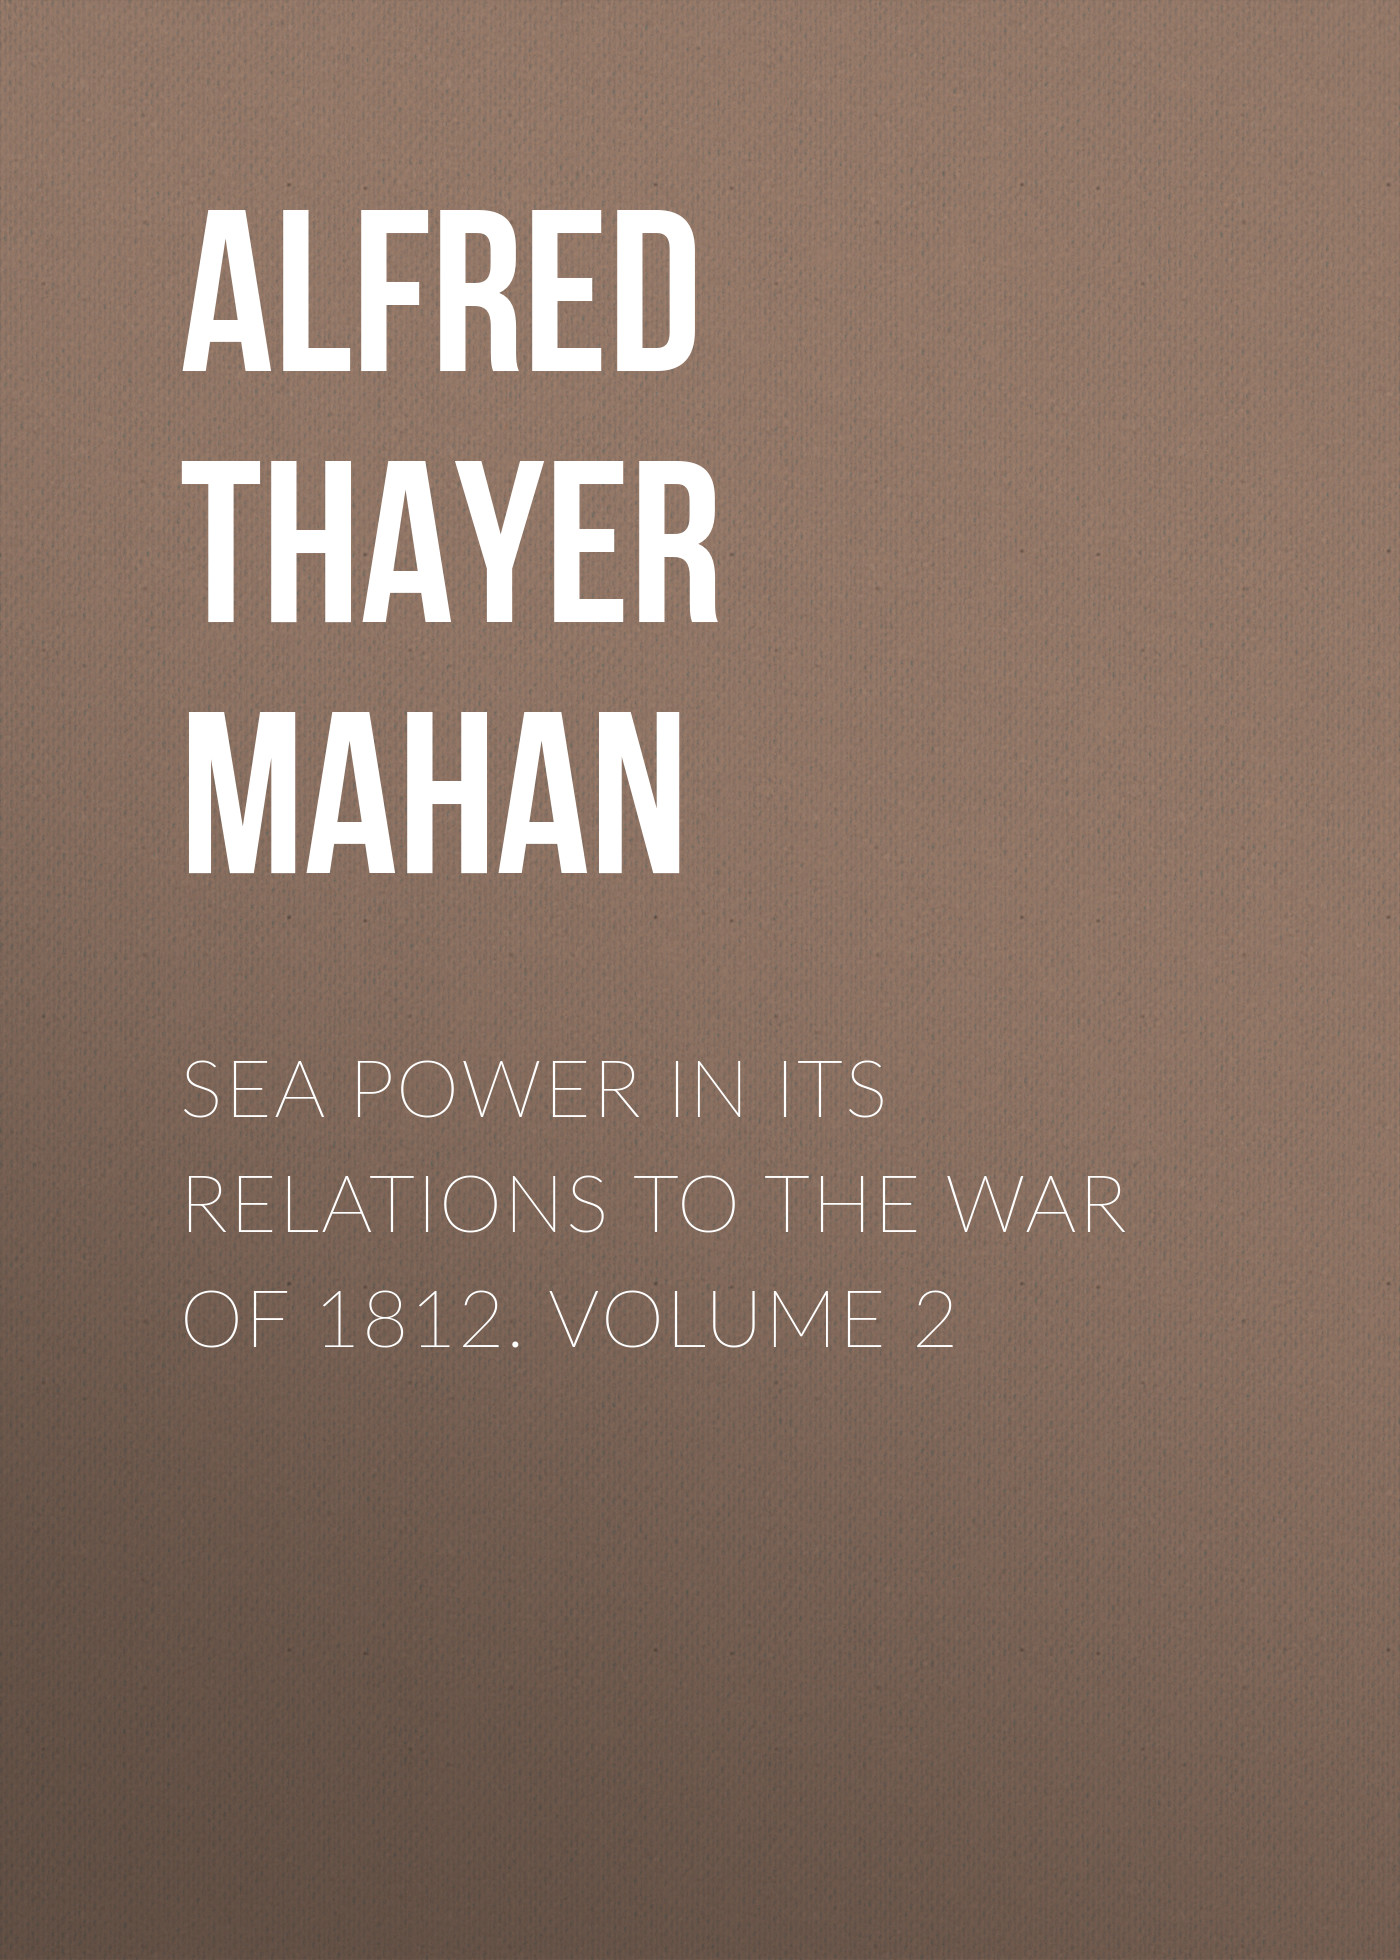 Alfred Thayer Mahan Sea Power in its Relations to the War of 1812. Volume 2 цены